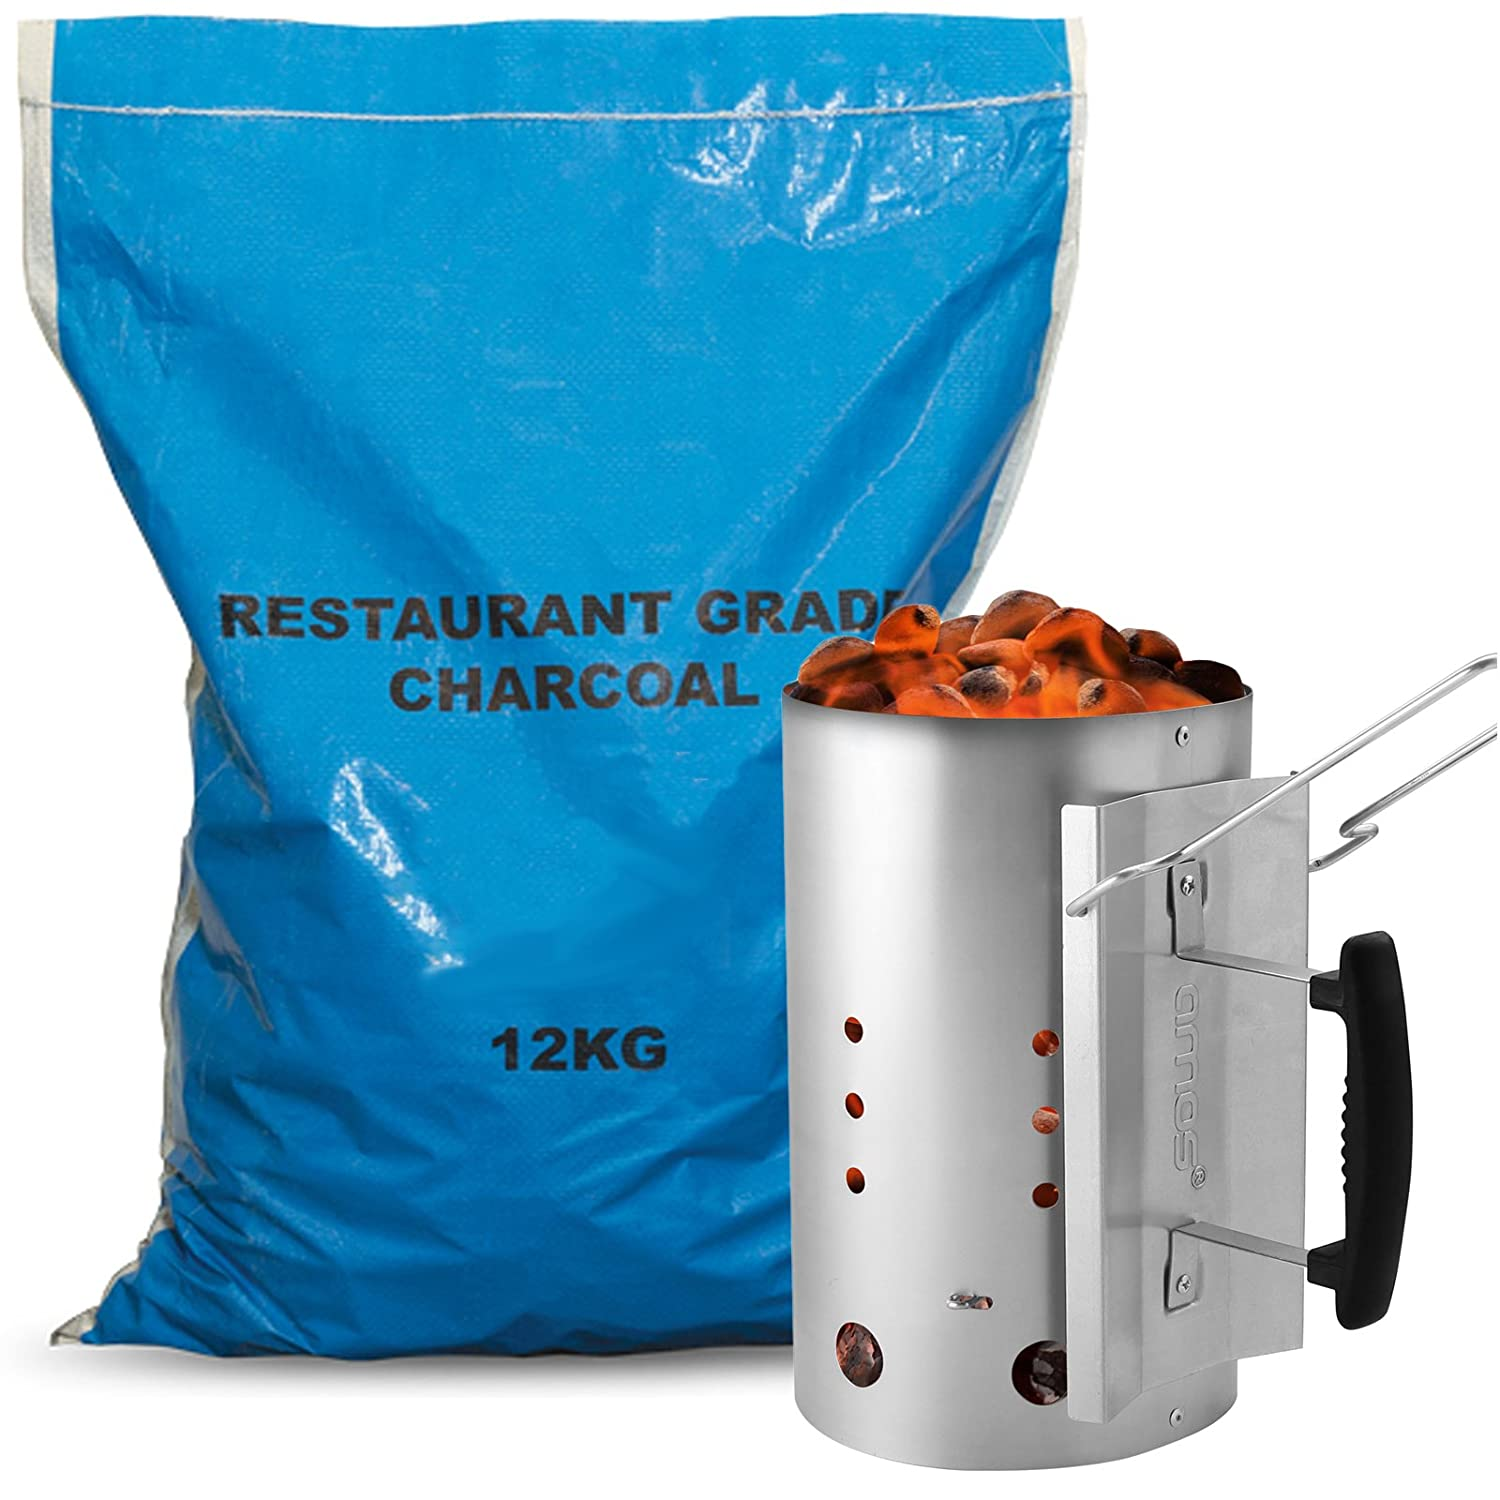 AMOS Chimney Starter 2.8kg Capacity Barbecue Quick Start + 12kg Restaurant Grade Lump Wood Charcoal